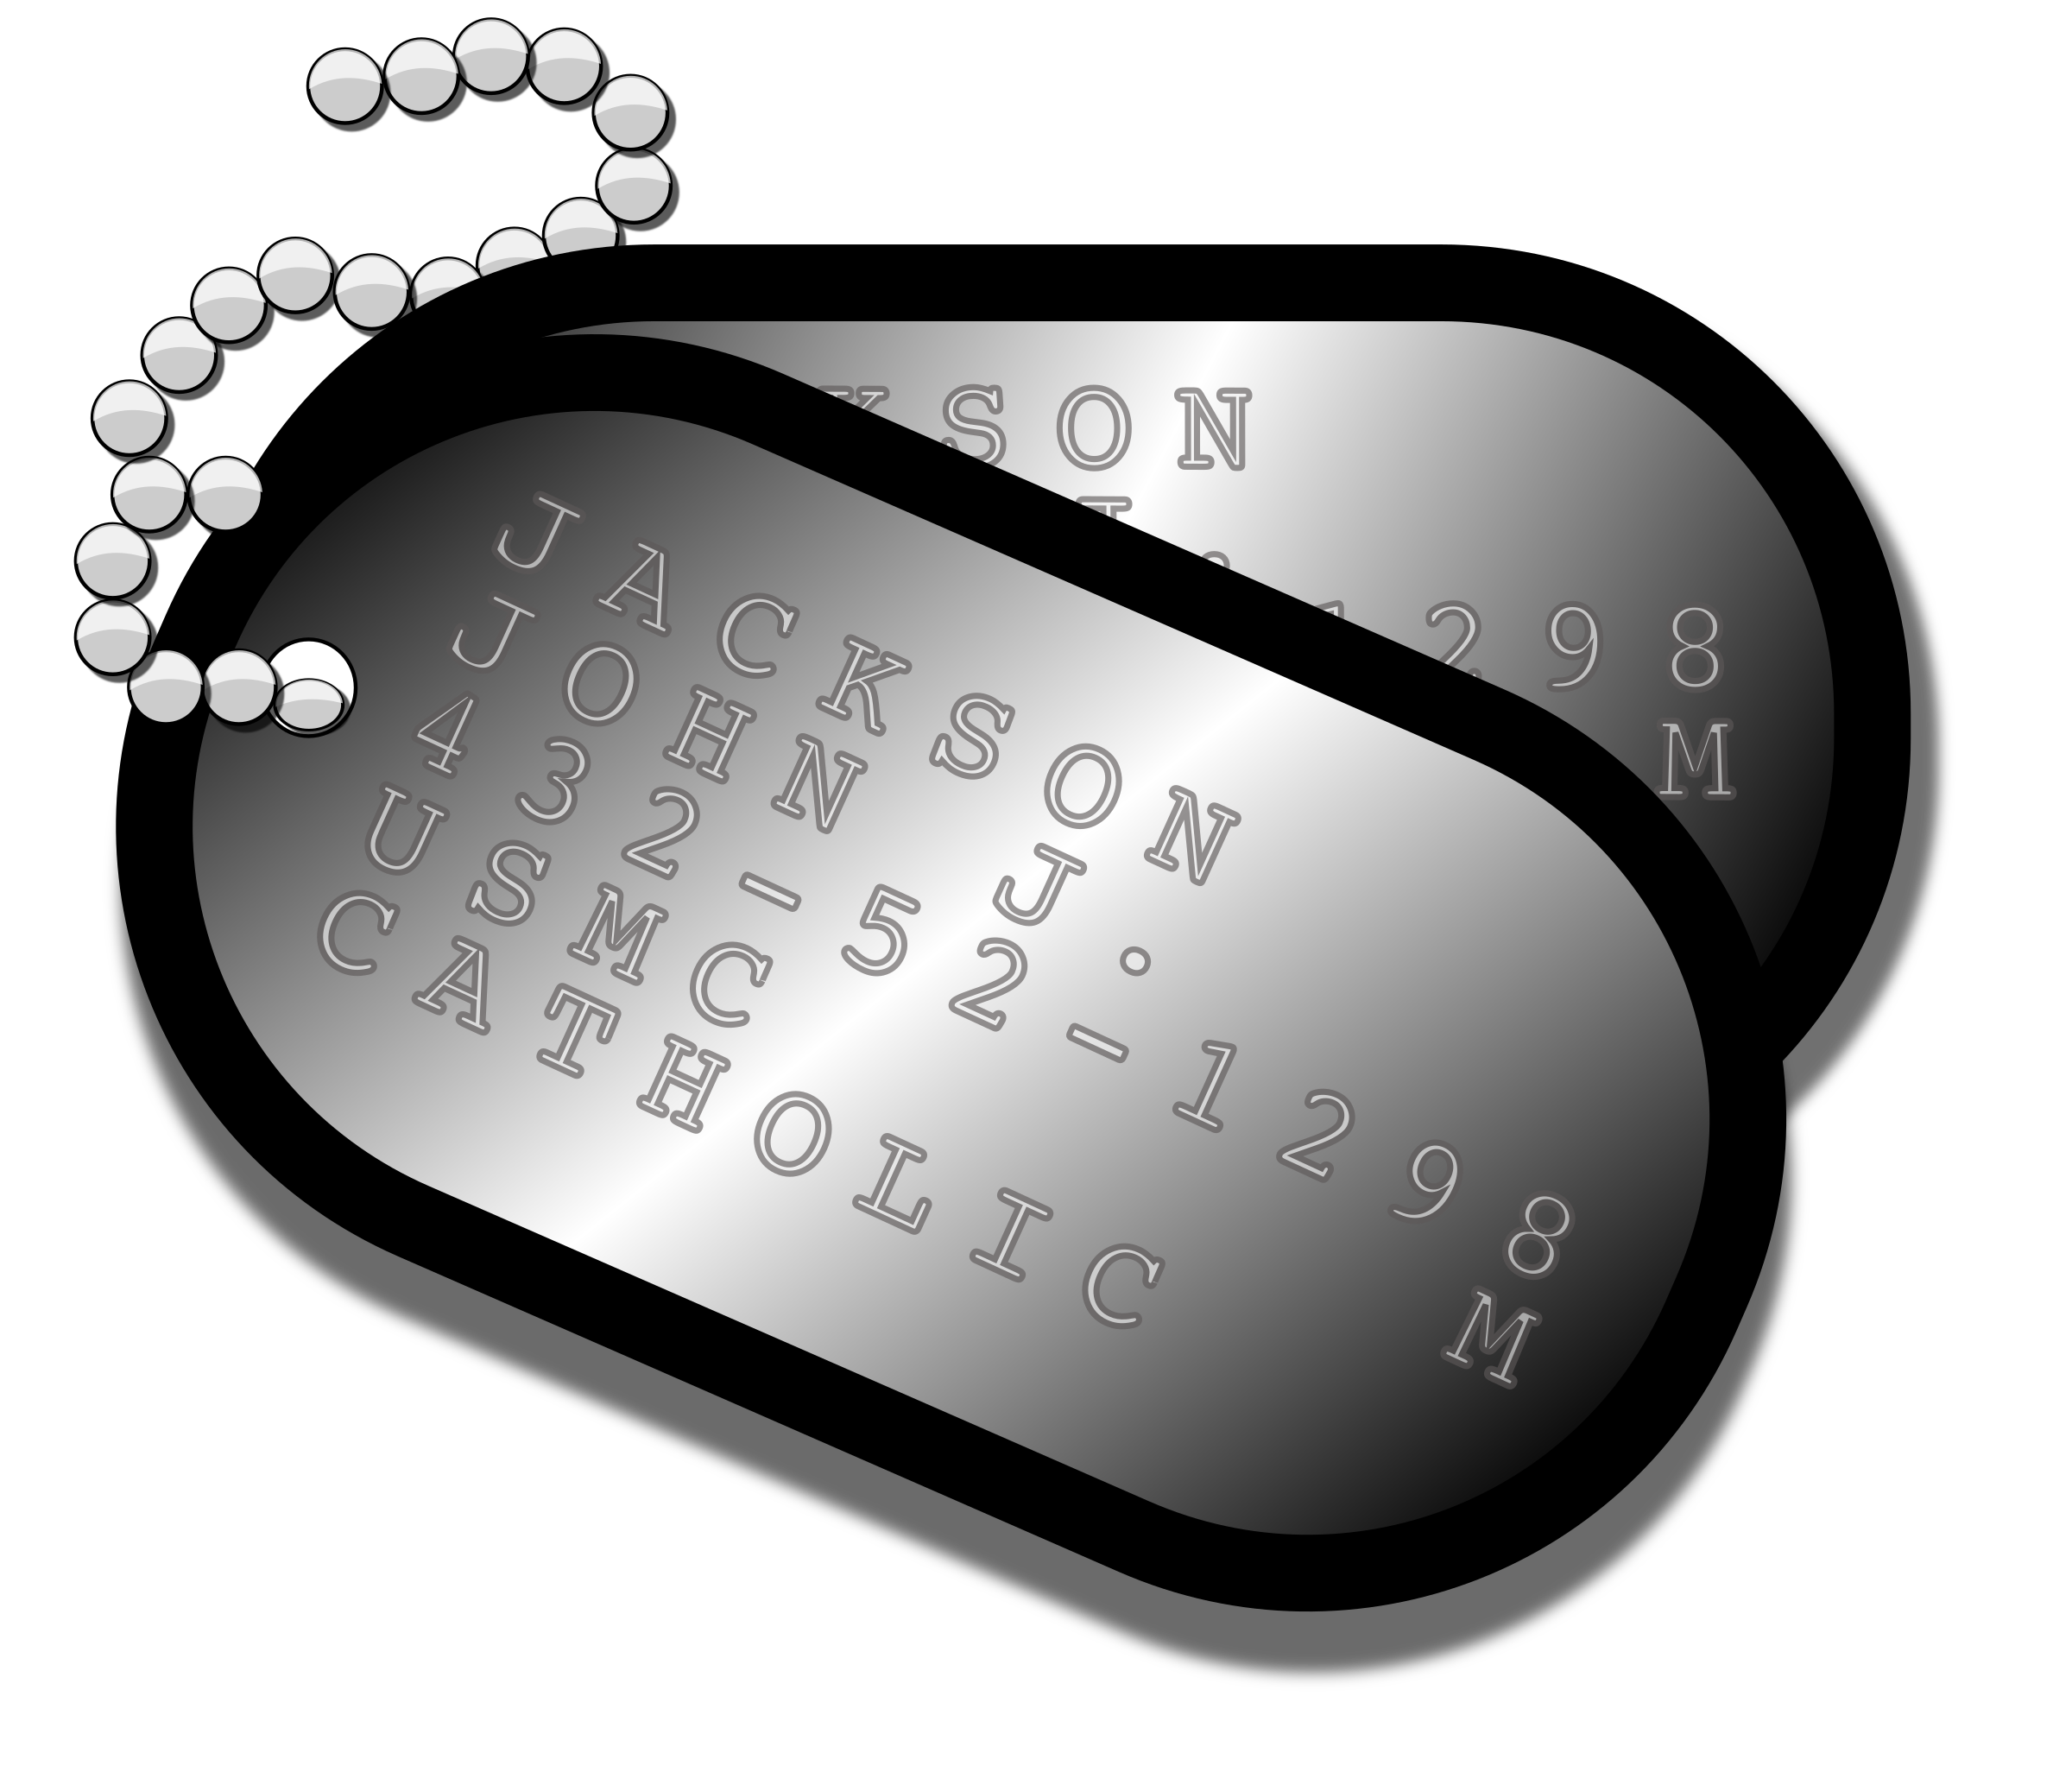 Dog tags clipart black and white jpg library download Clipart - Military Dog Tags jpg library download